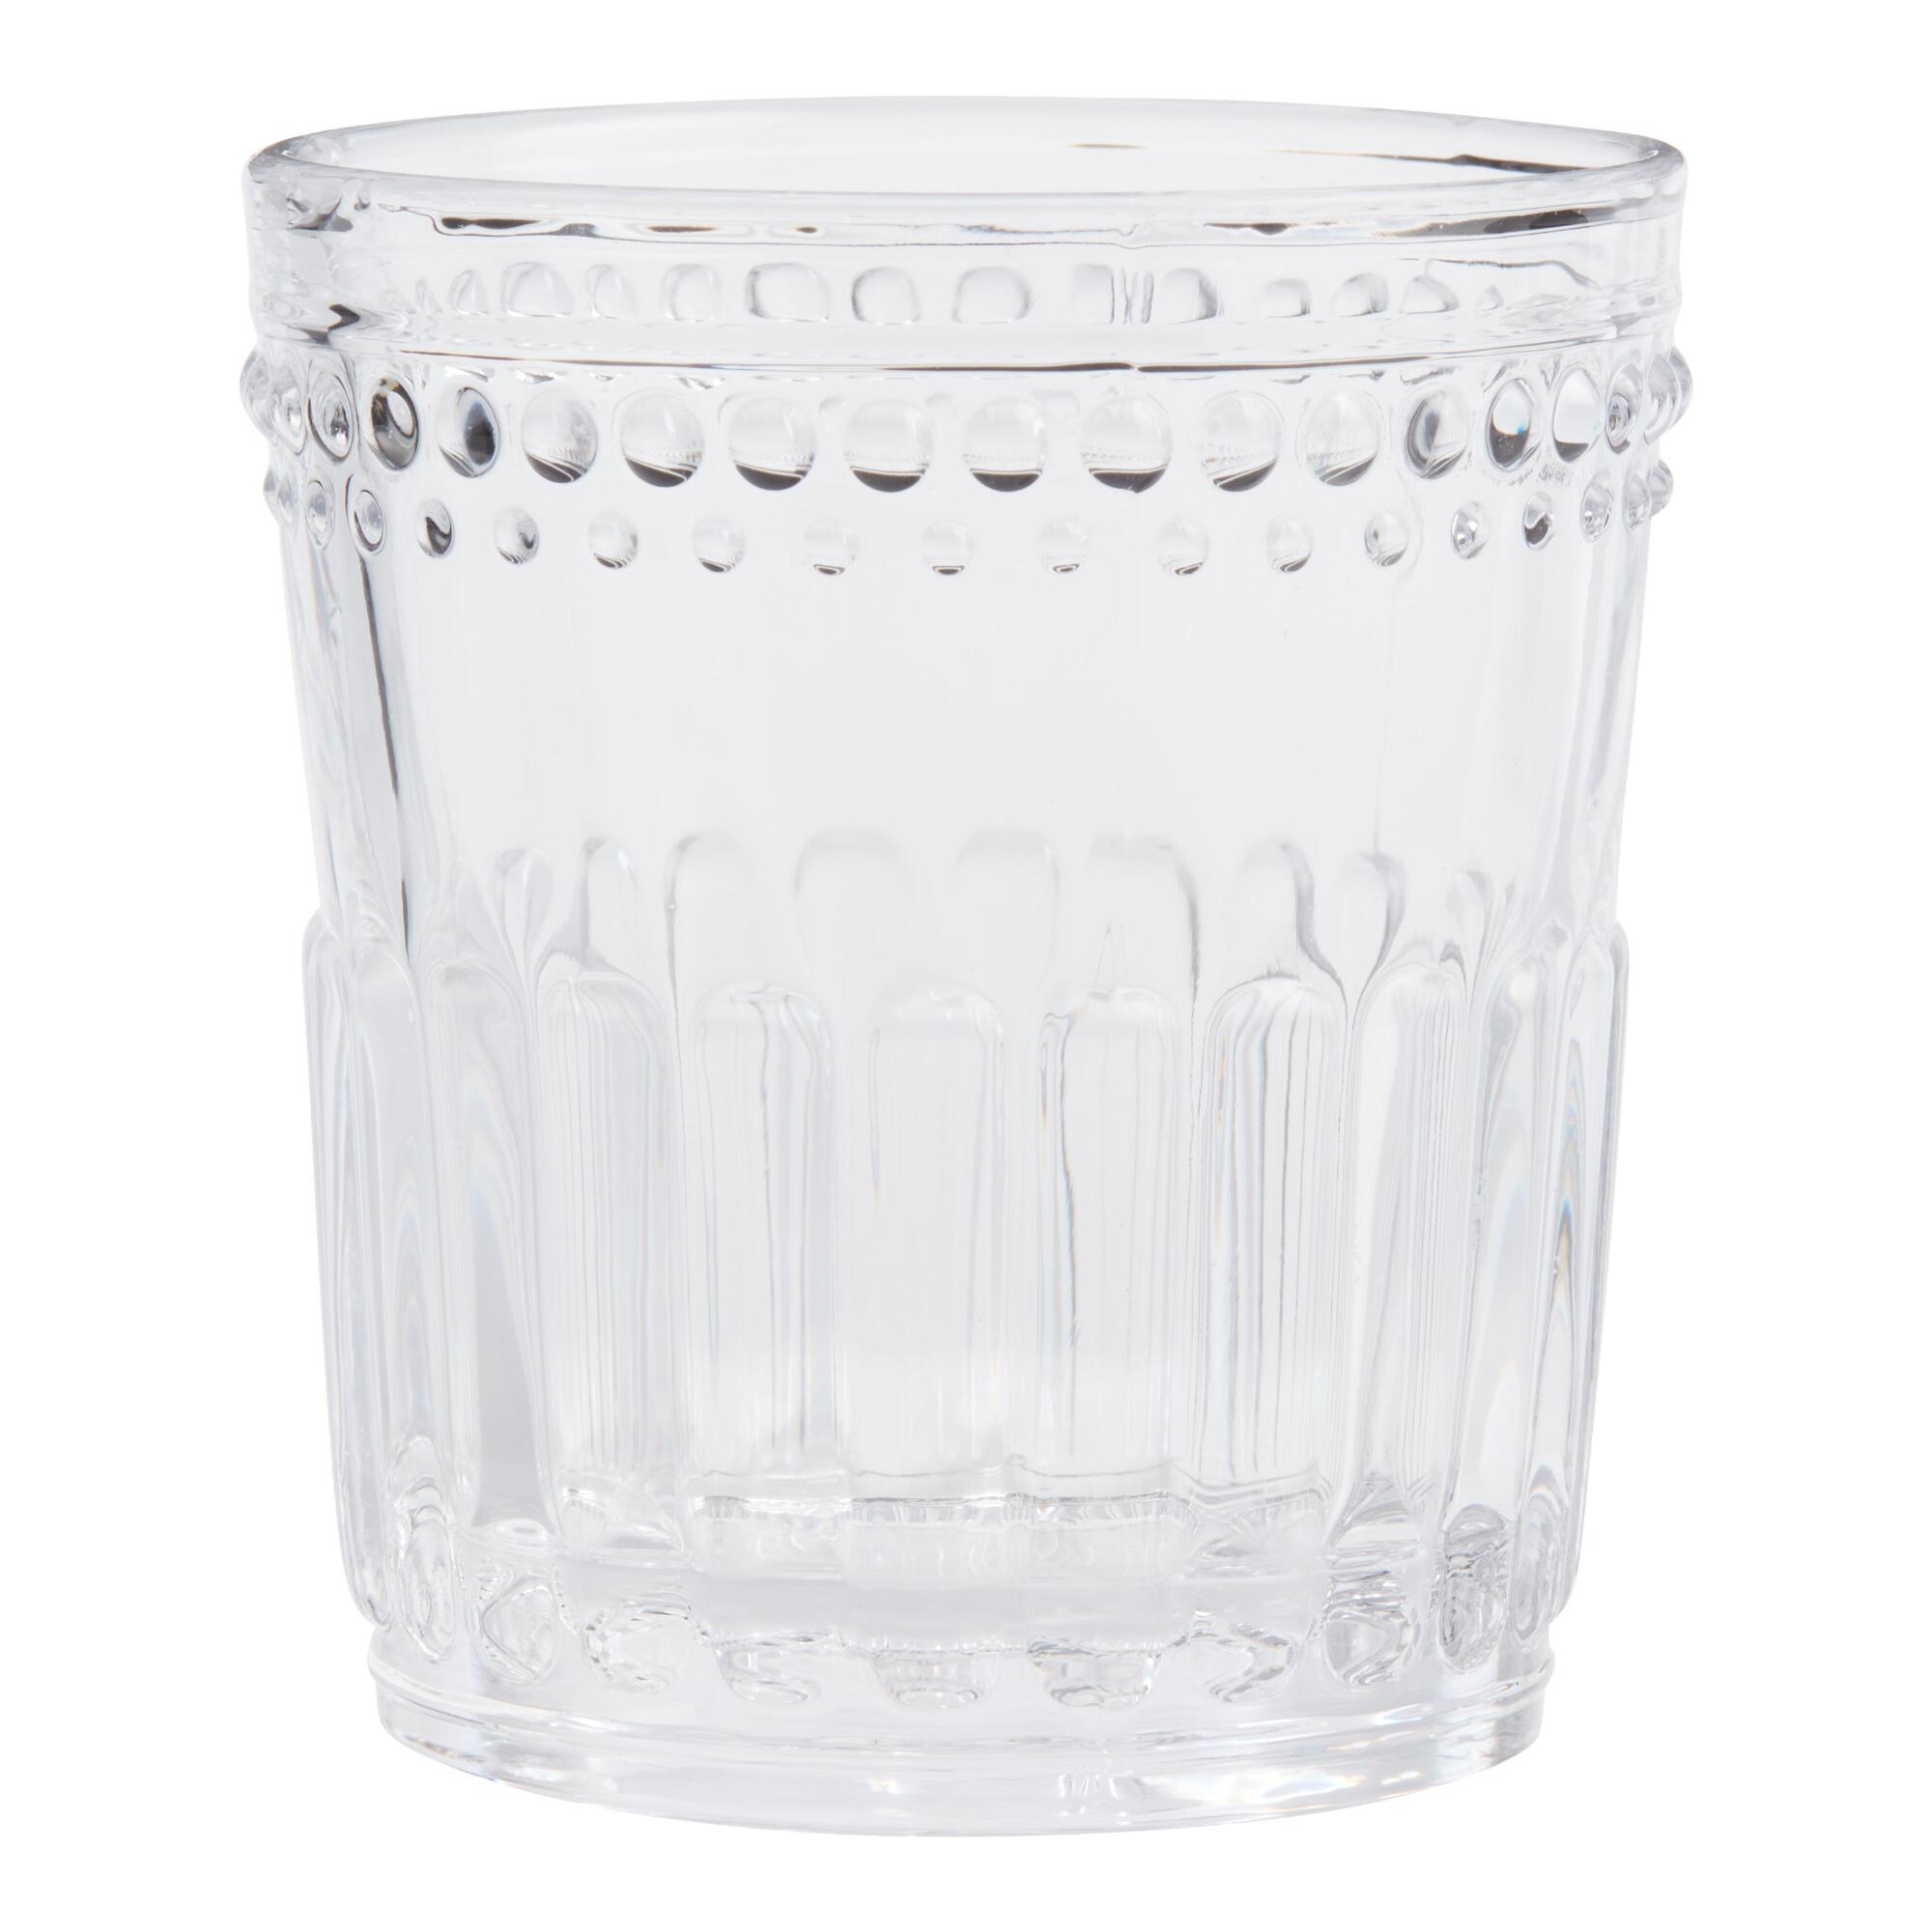 Clear Pressed Glass Double Old Fashioned Glasses Set of 4 by World Market